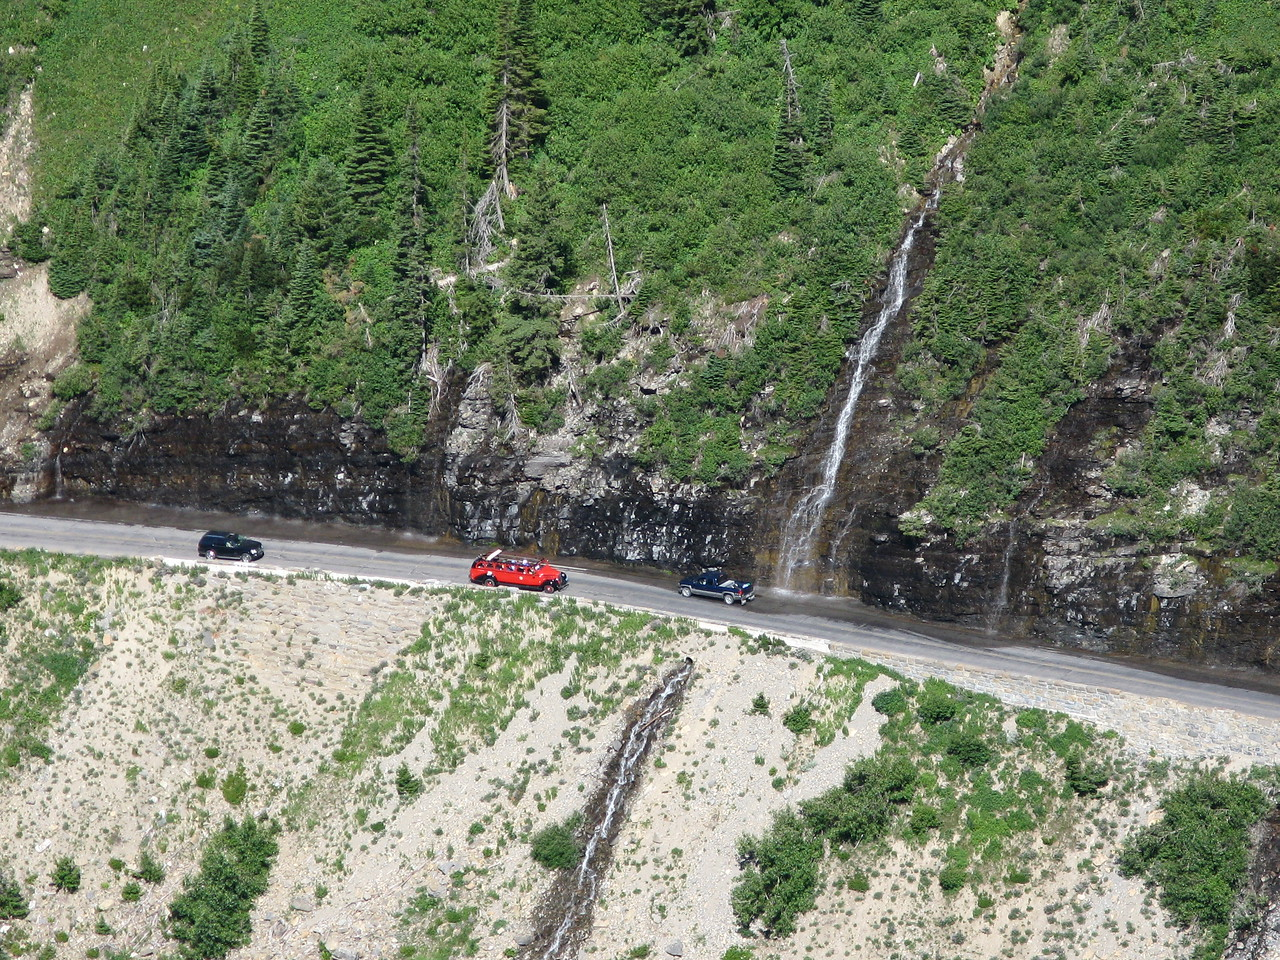 This short section of the Going-to-the-Sun Road is called the Weeping Wall.  A waterfall cascades down onto the roadway.  Near the center of the picture is a red jammer tour bus.  It has a canvas roof, which appears to be in the retracted position.  The tourists are going to get wet under the falls.